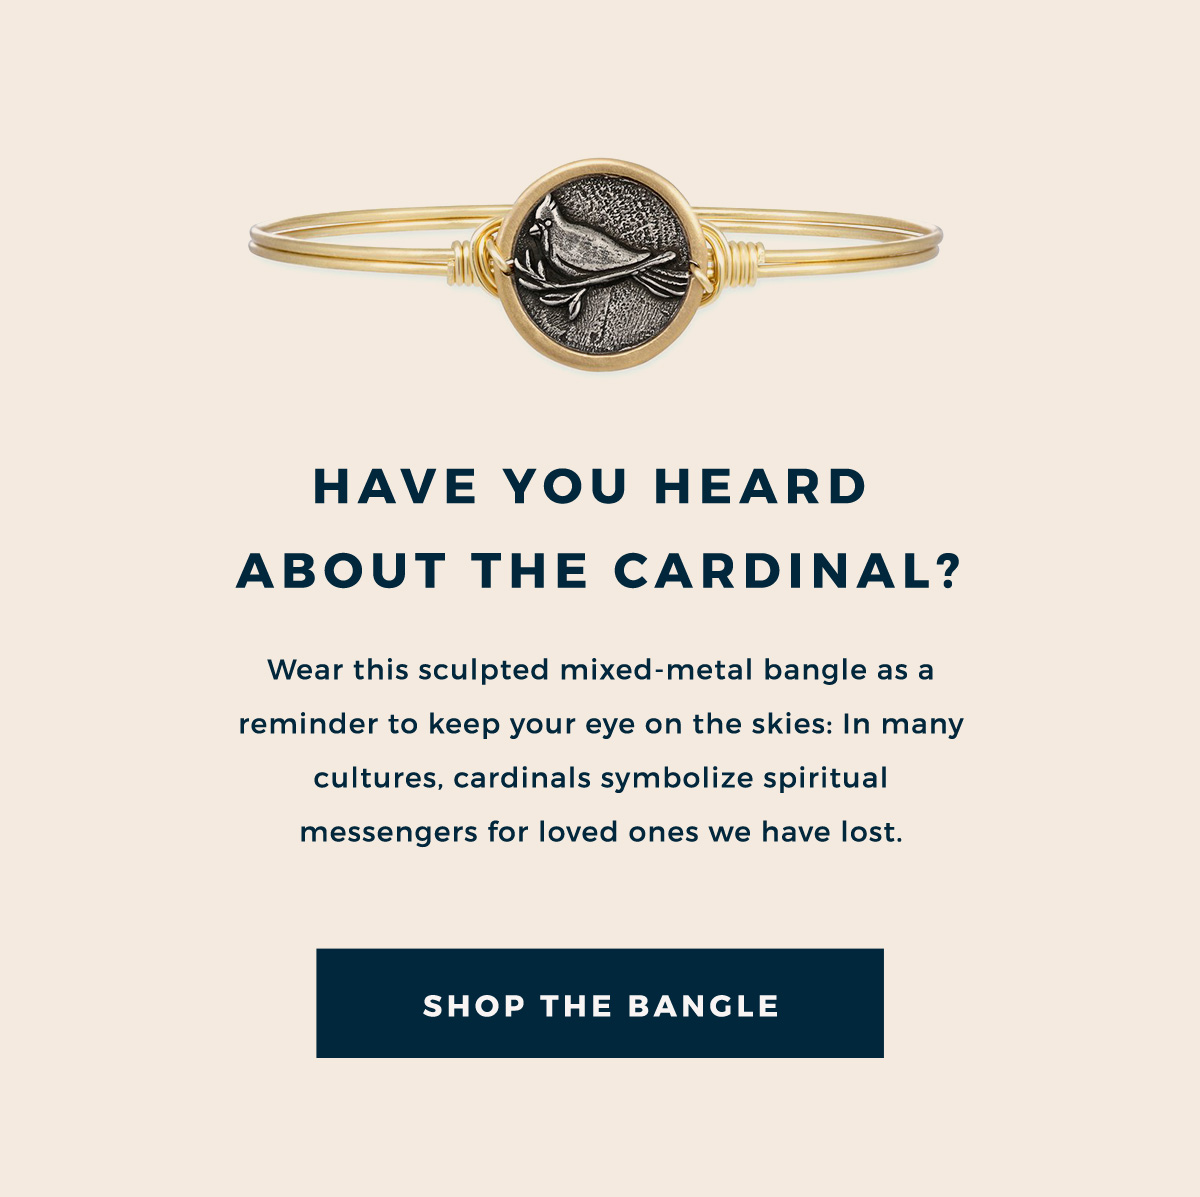 HAVE YOU HEARD ABOUT THE CARDINAL? | Wear this sculpted mixed-metal bangle as a reminder to keep your eye on the skies: In many cultures, cardinals symbolize spiritual messengers for loved ones we have lost. | SHOP THE BANGLE